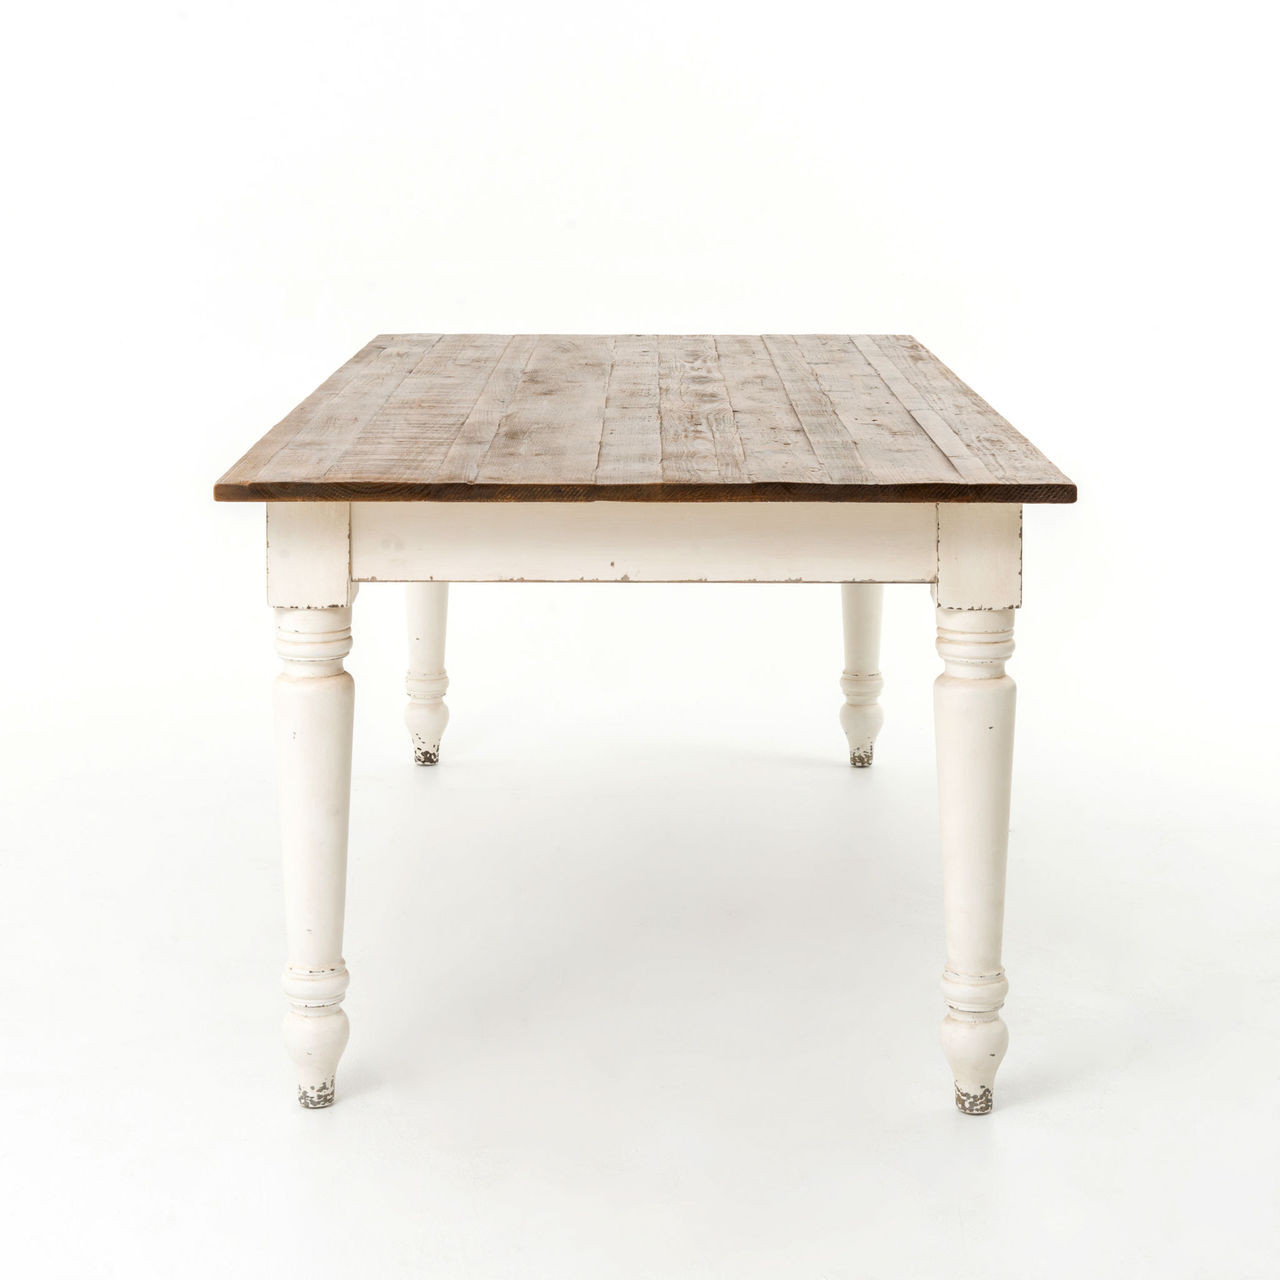 Off White Dining Table Part - 17: ... Rustic Wood Off White Dining Table ...